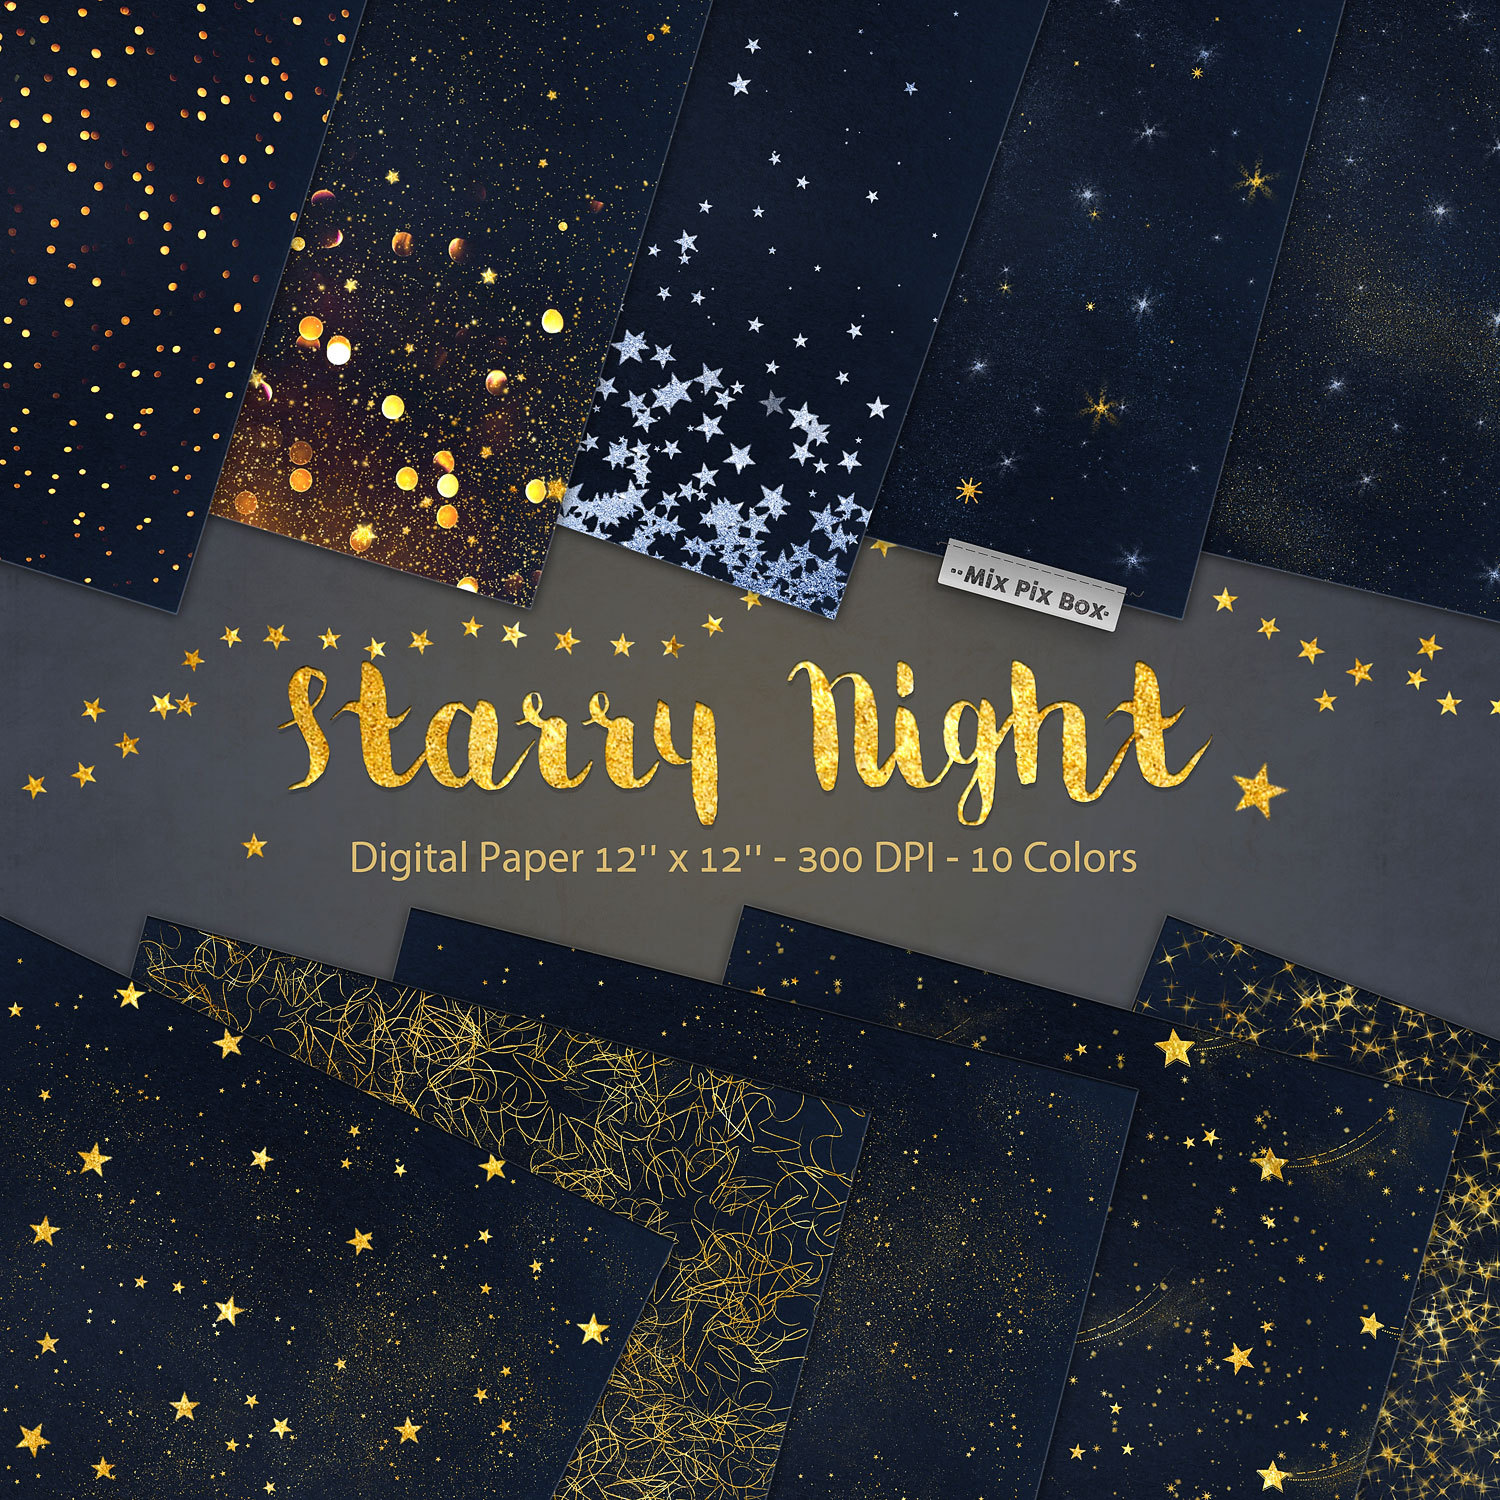 Starry Night Backgrounds example image 1